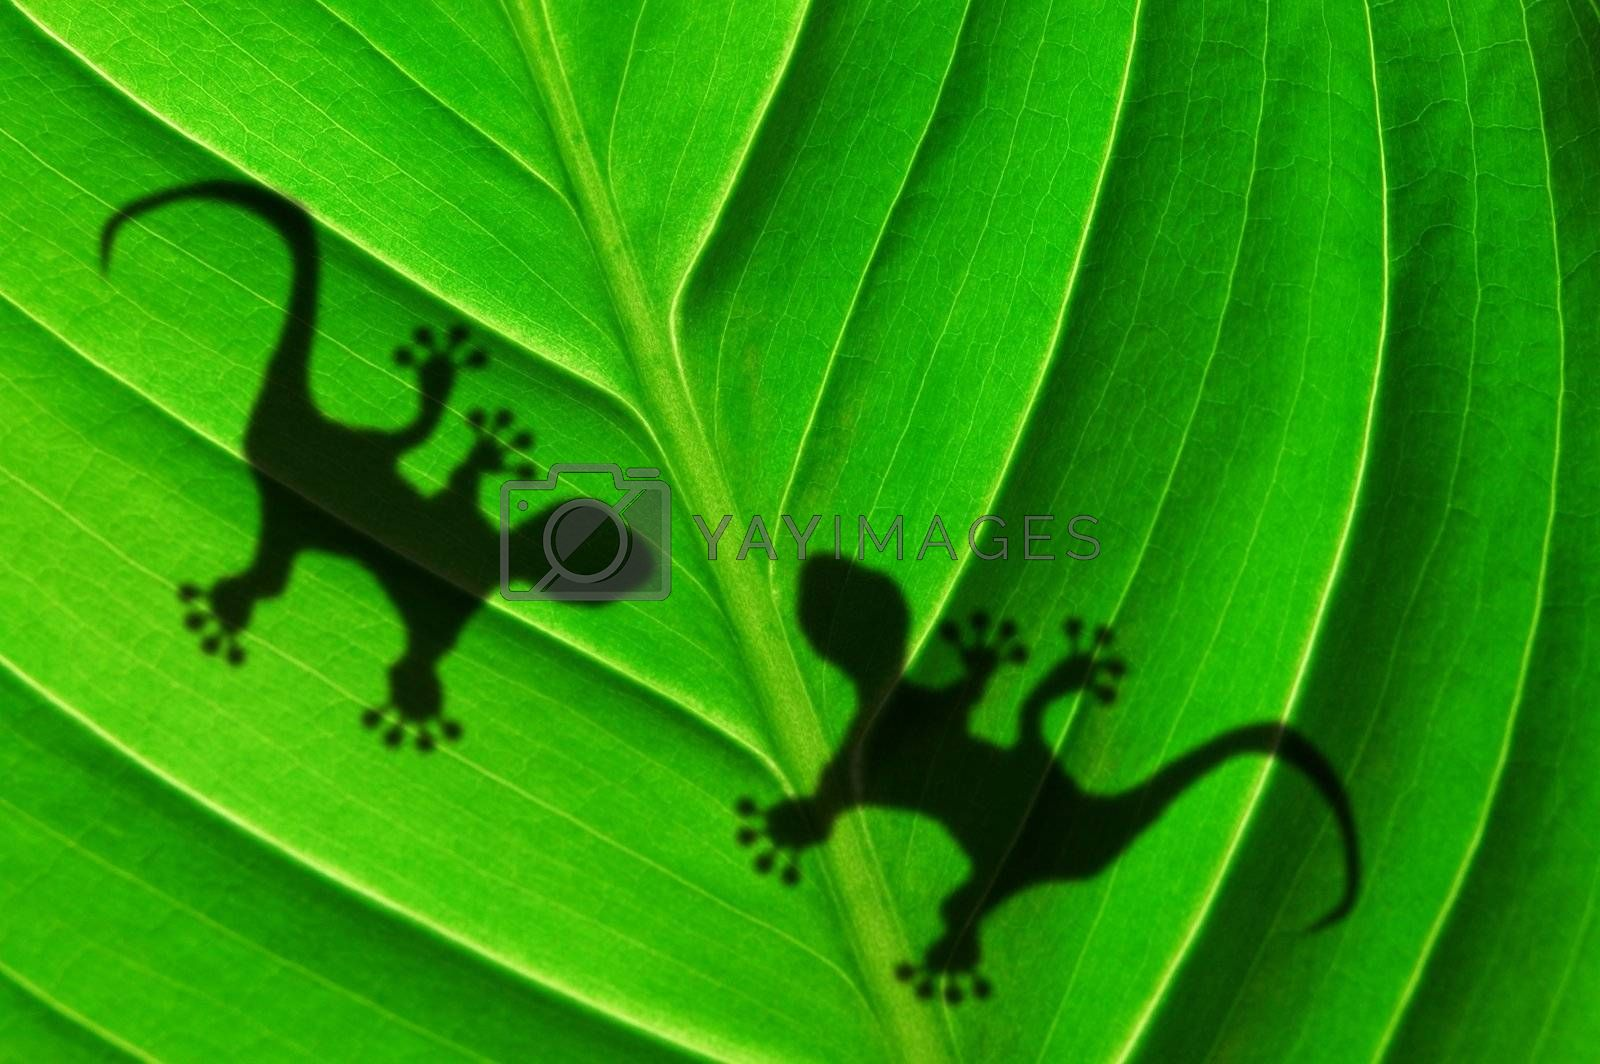 Royalty free image of green jungle leaf and gecko by gunnar3000